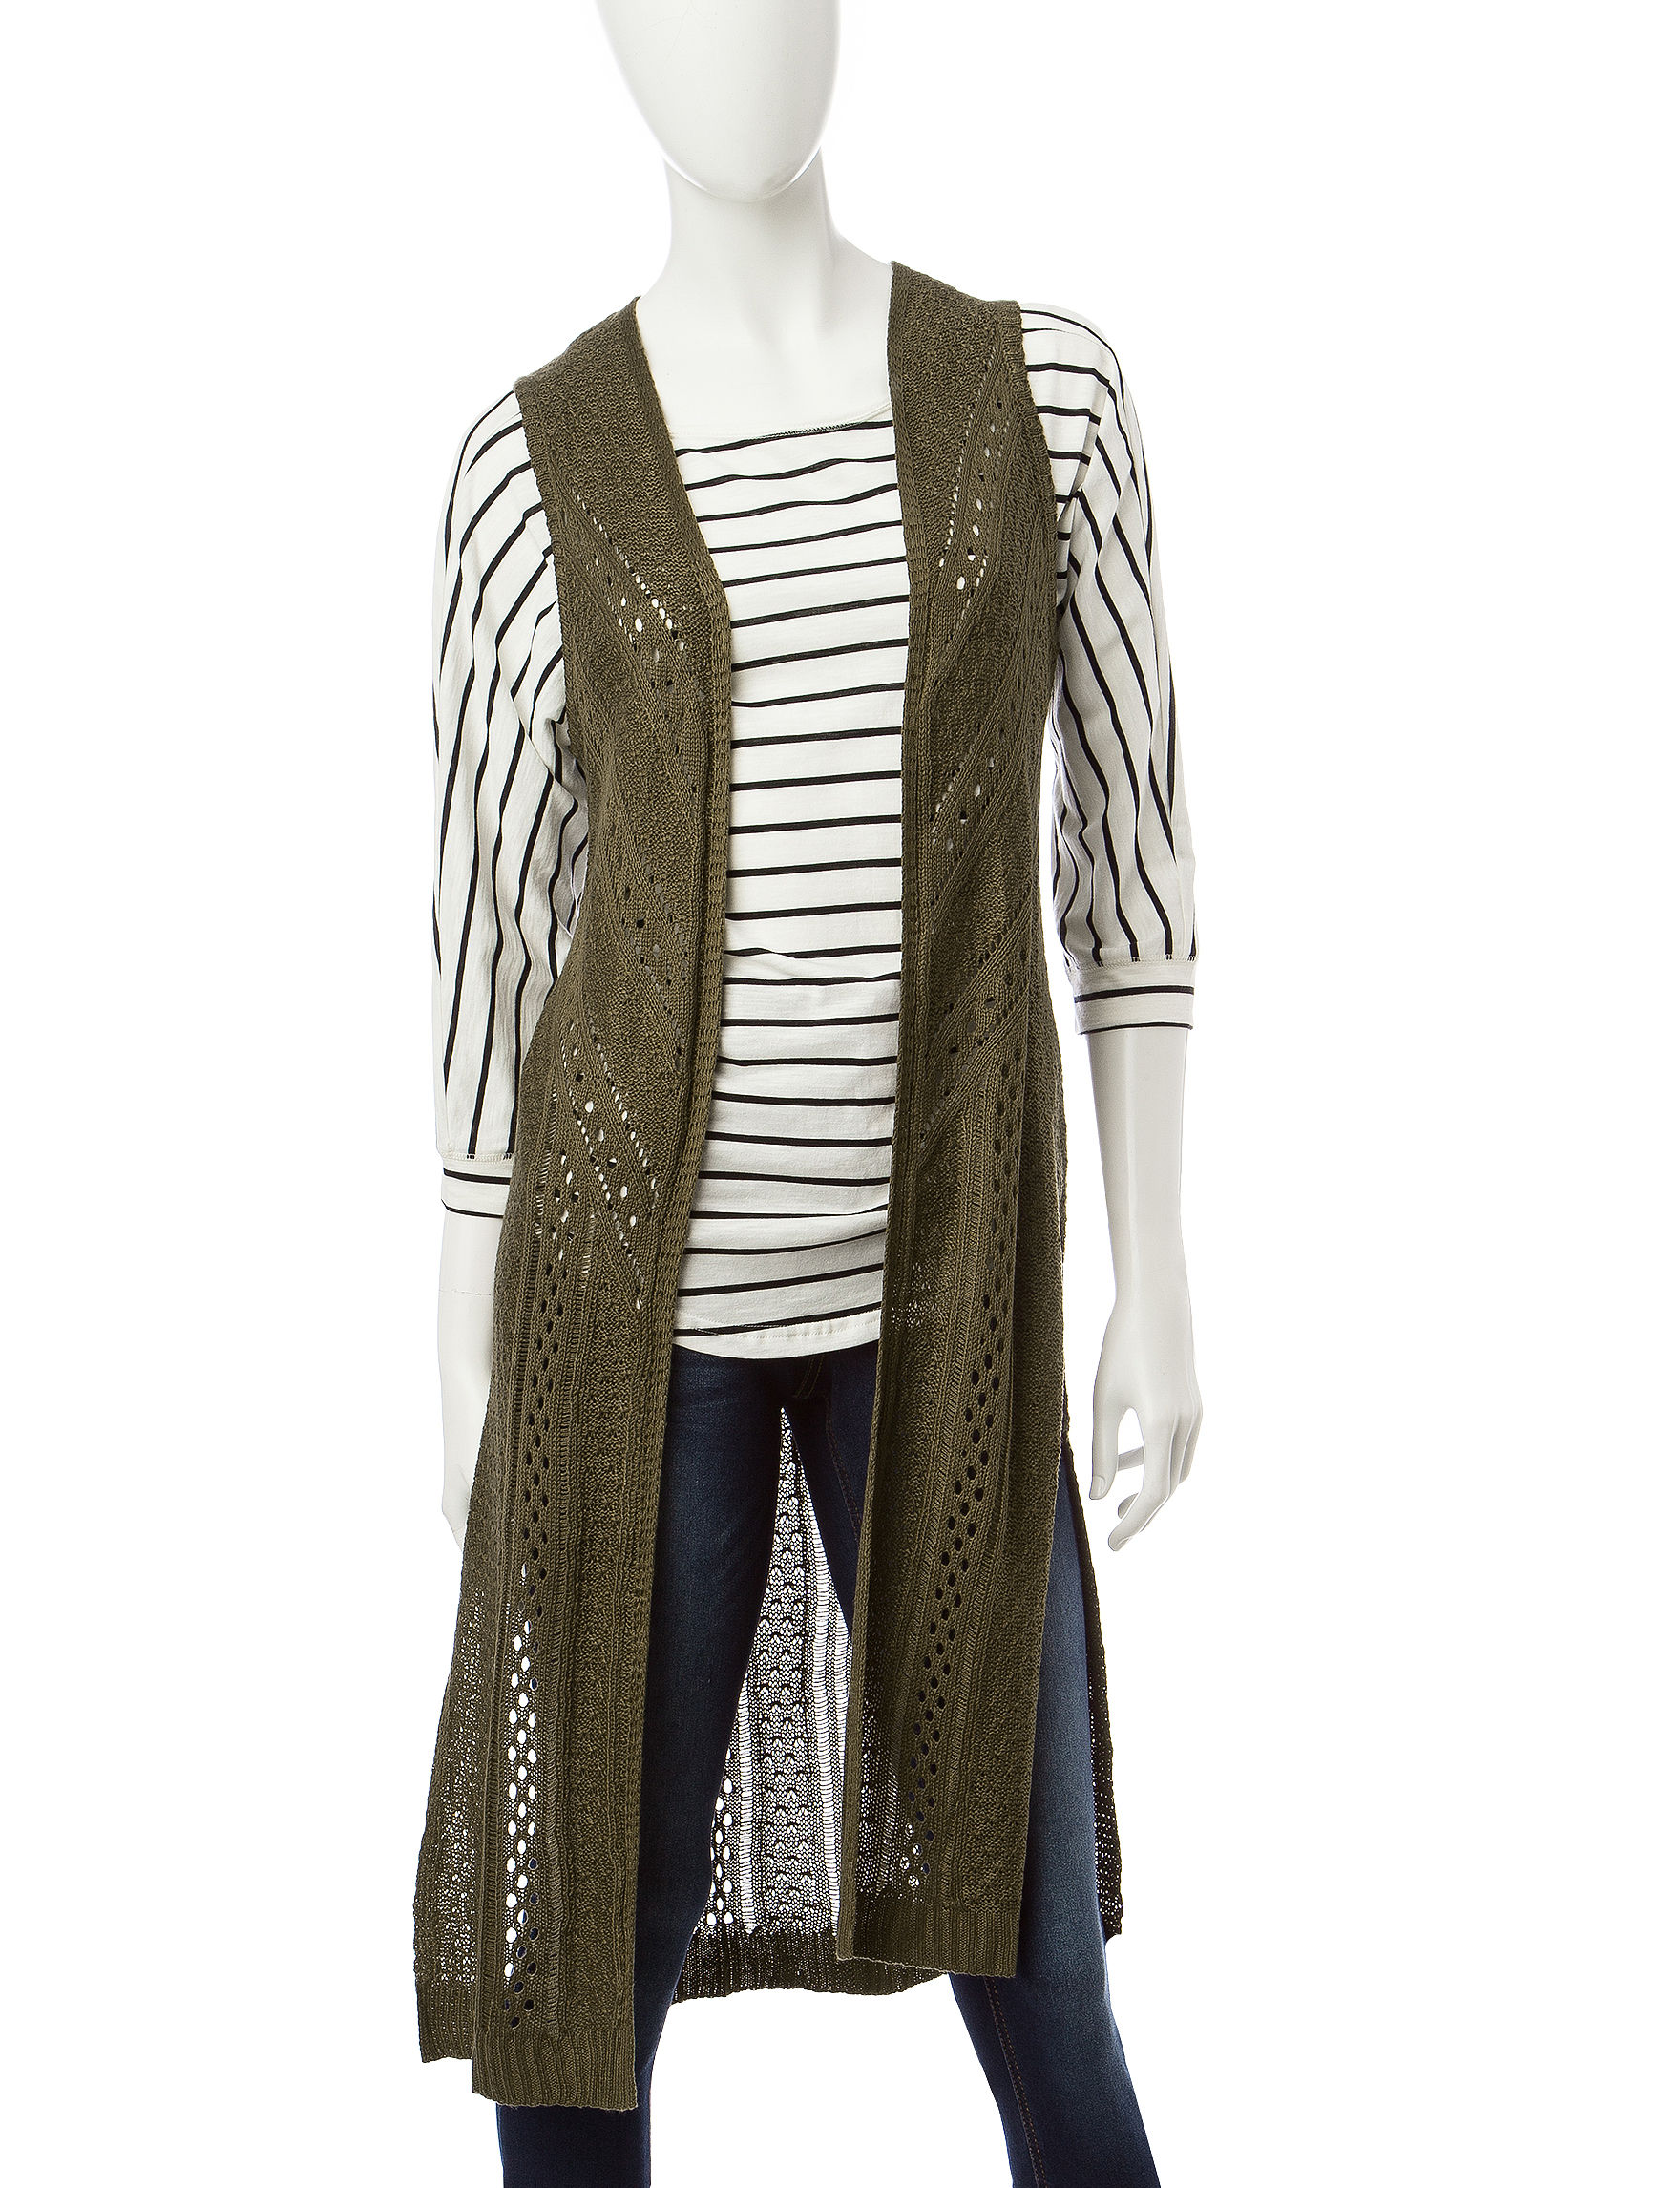 It's Our Time Olive Cardigans Sweaters Vests